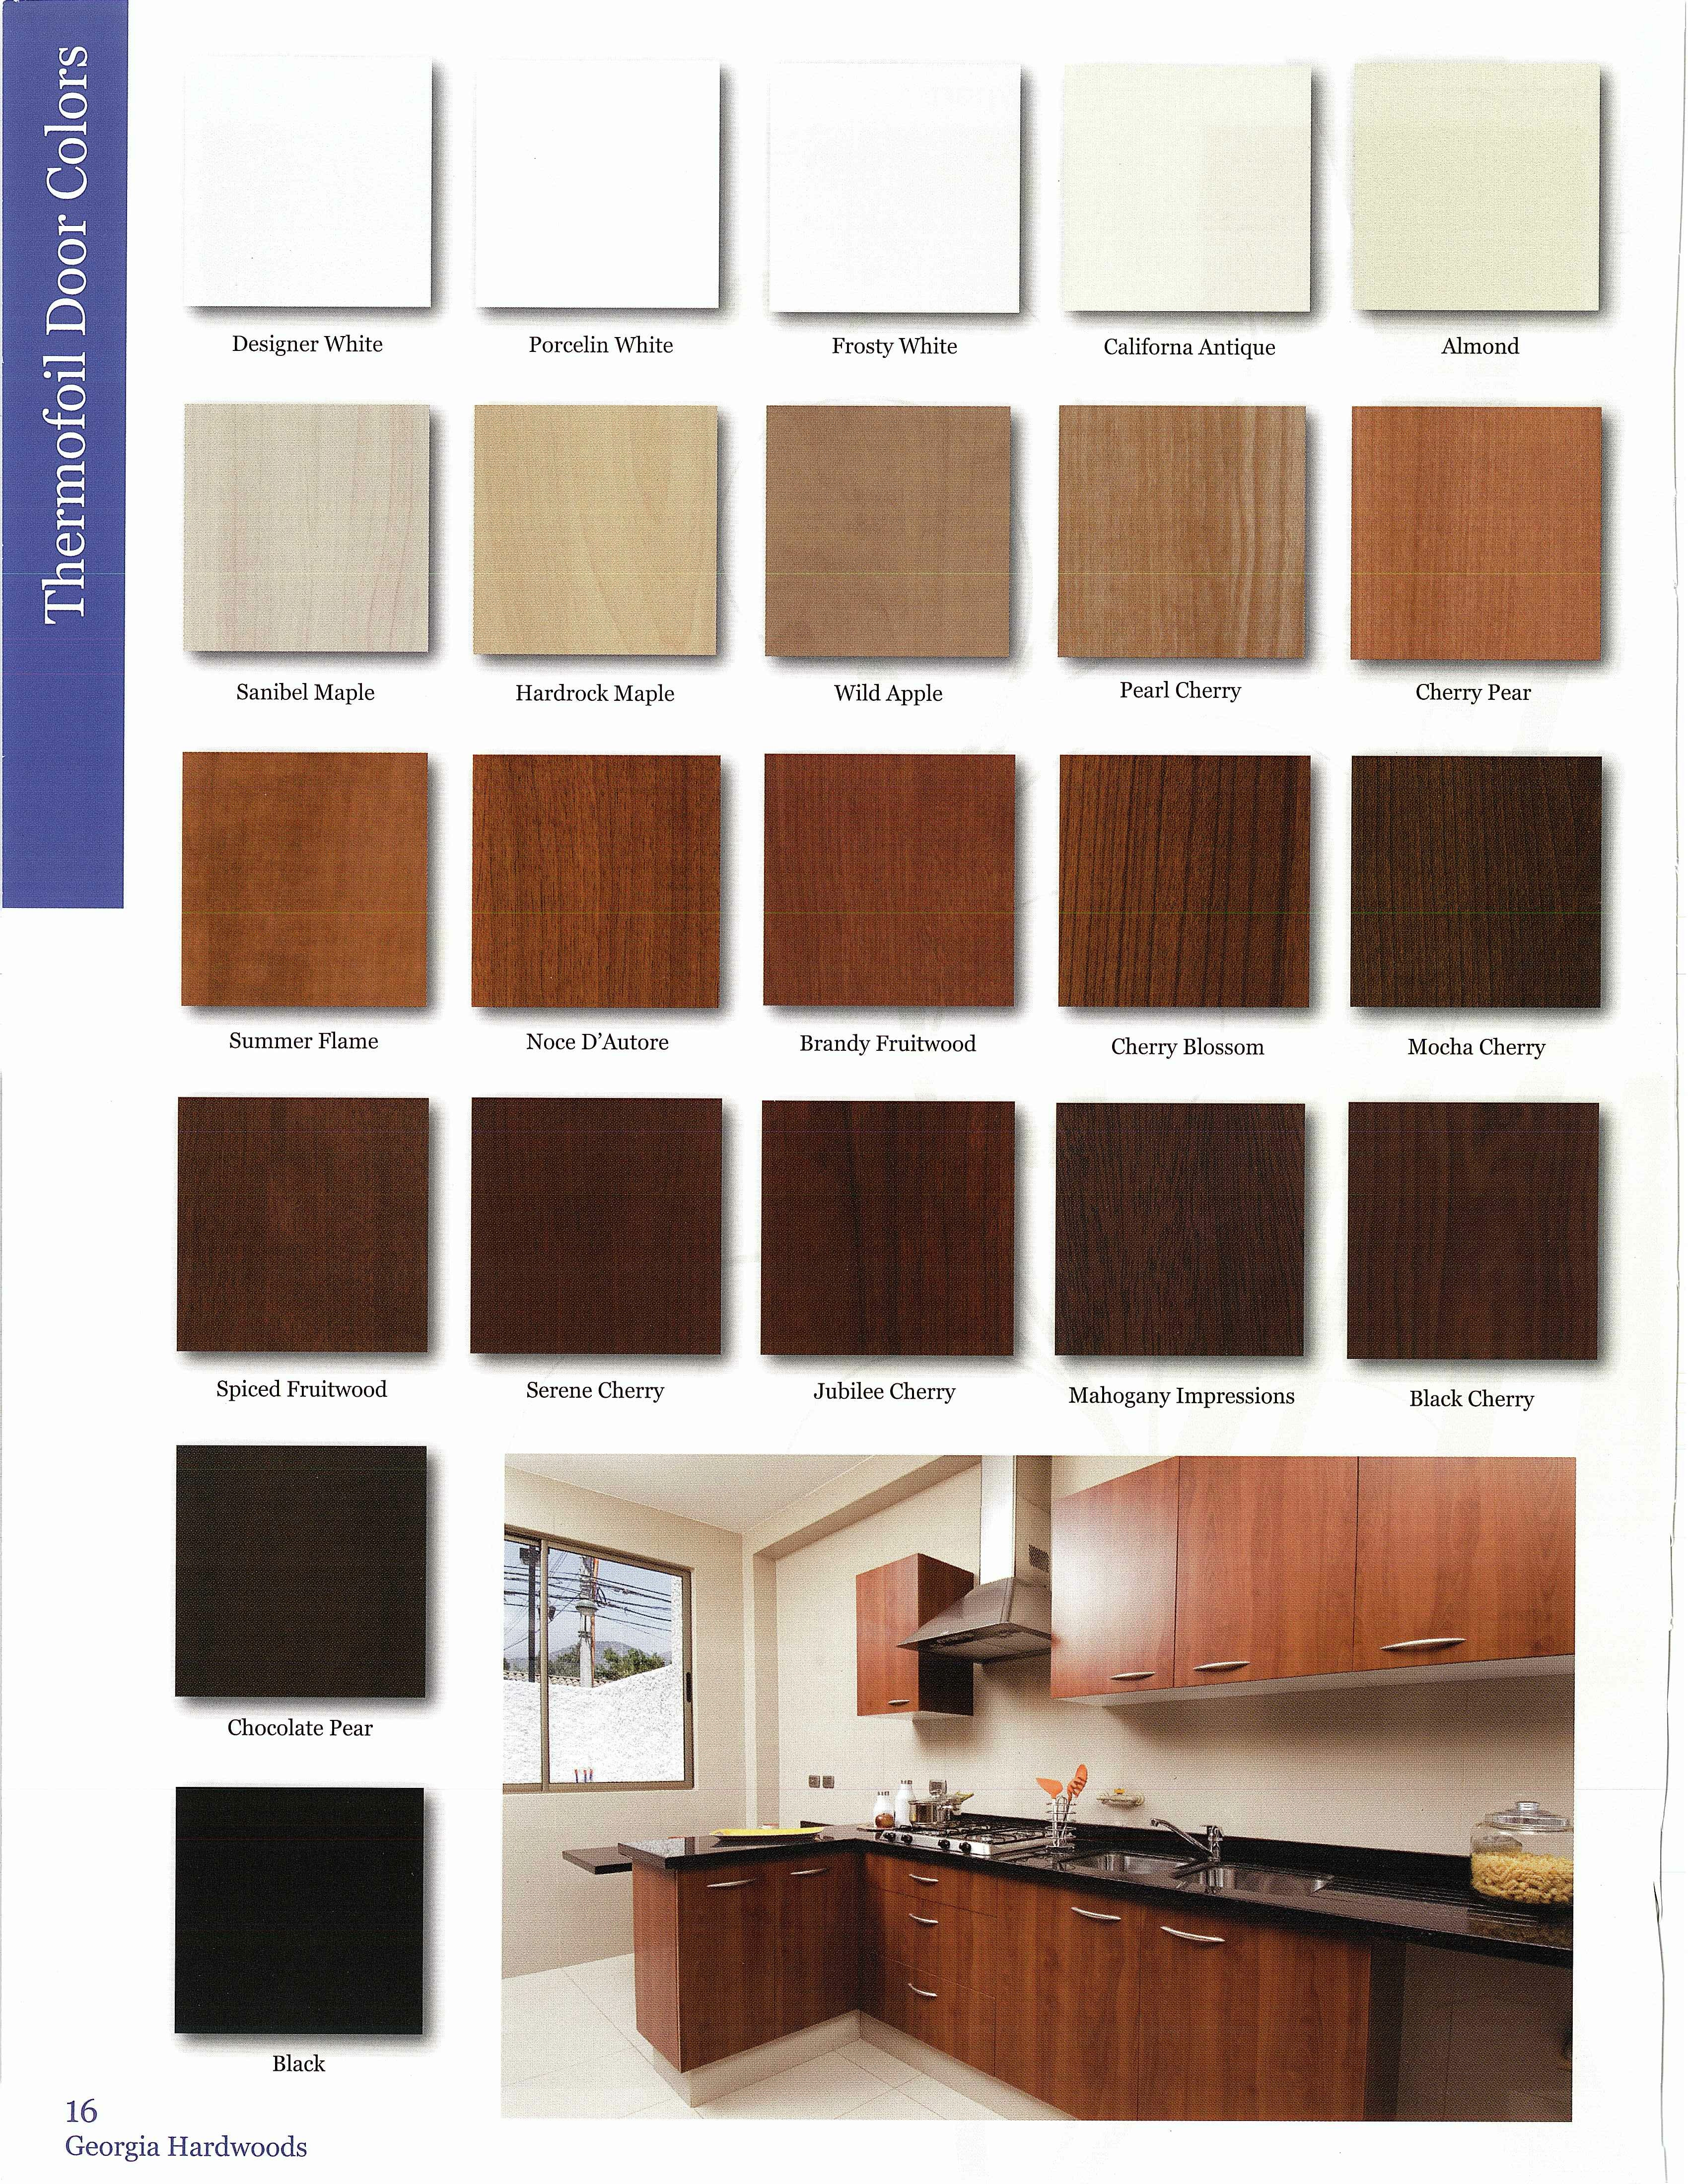 Adalitecabinets Cabinet Color Options